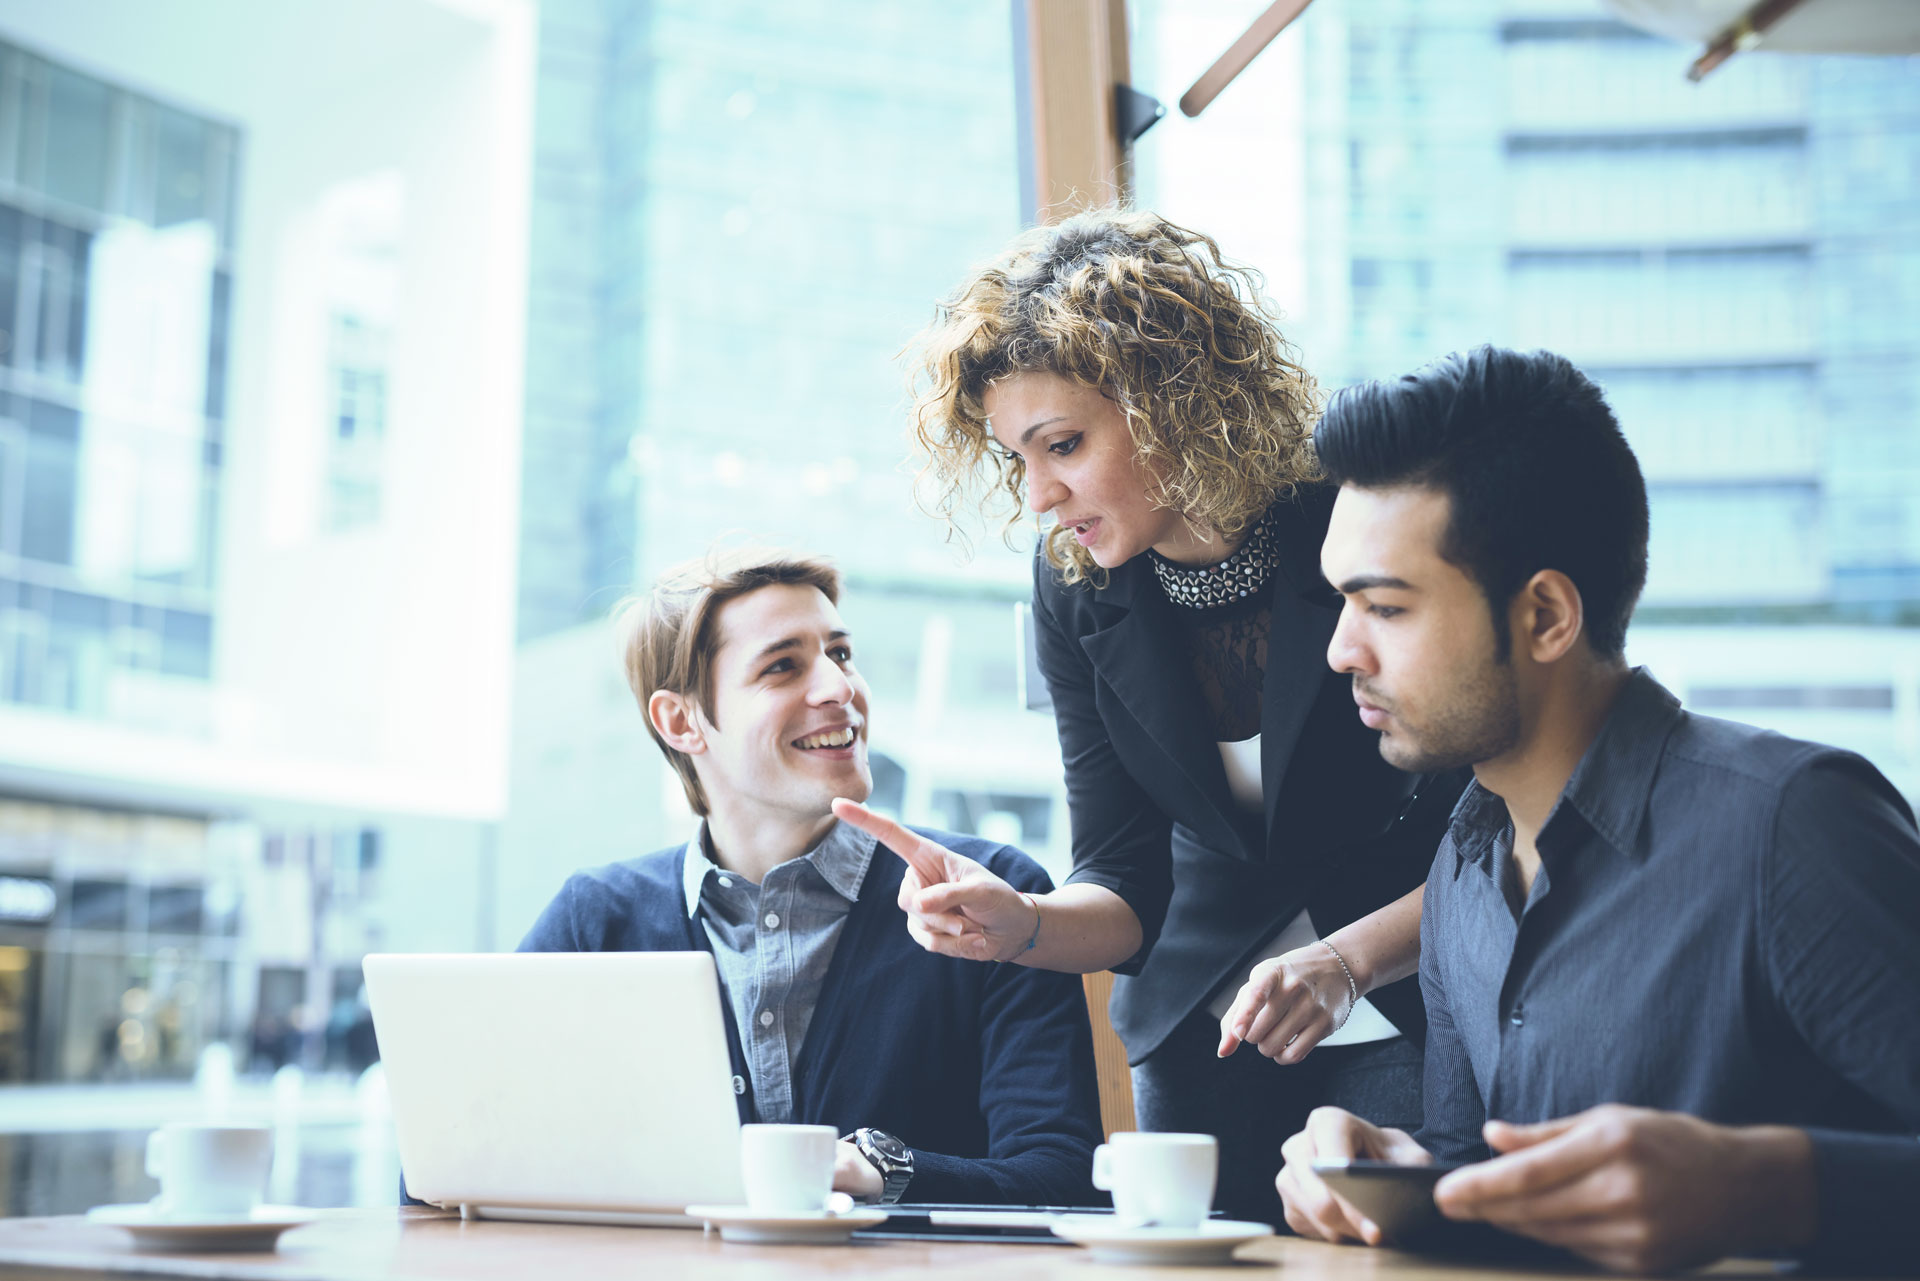 Multiracial contemporary business people working connected with technological devices like tablet and laptop, talking together - finance, business, technology concept.